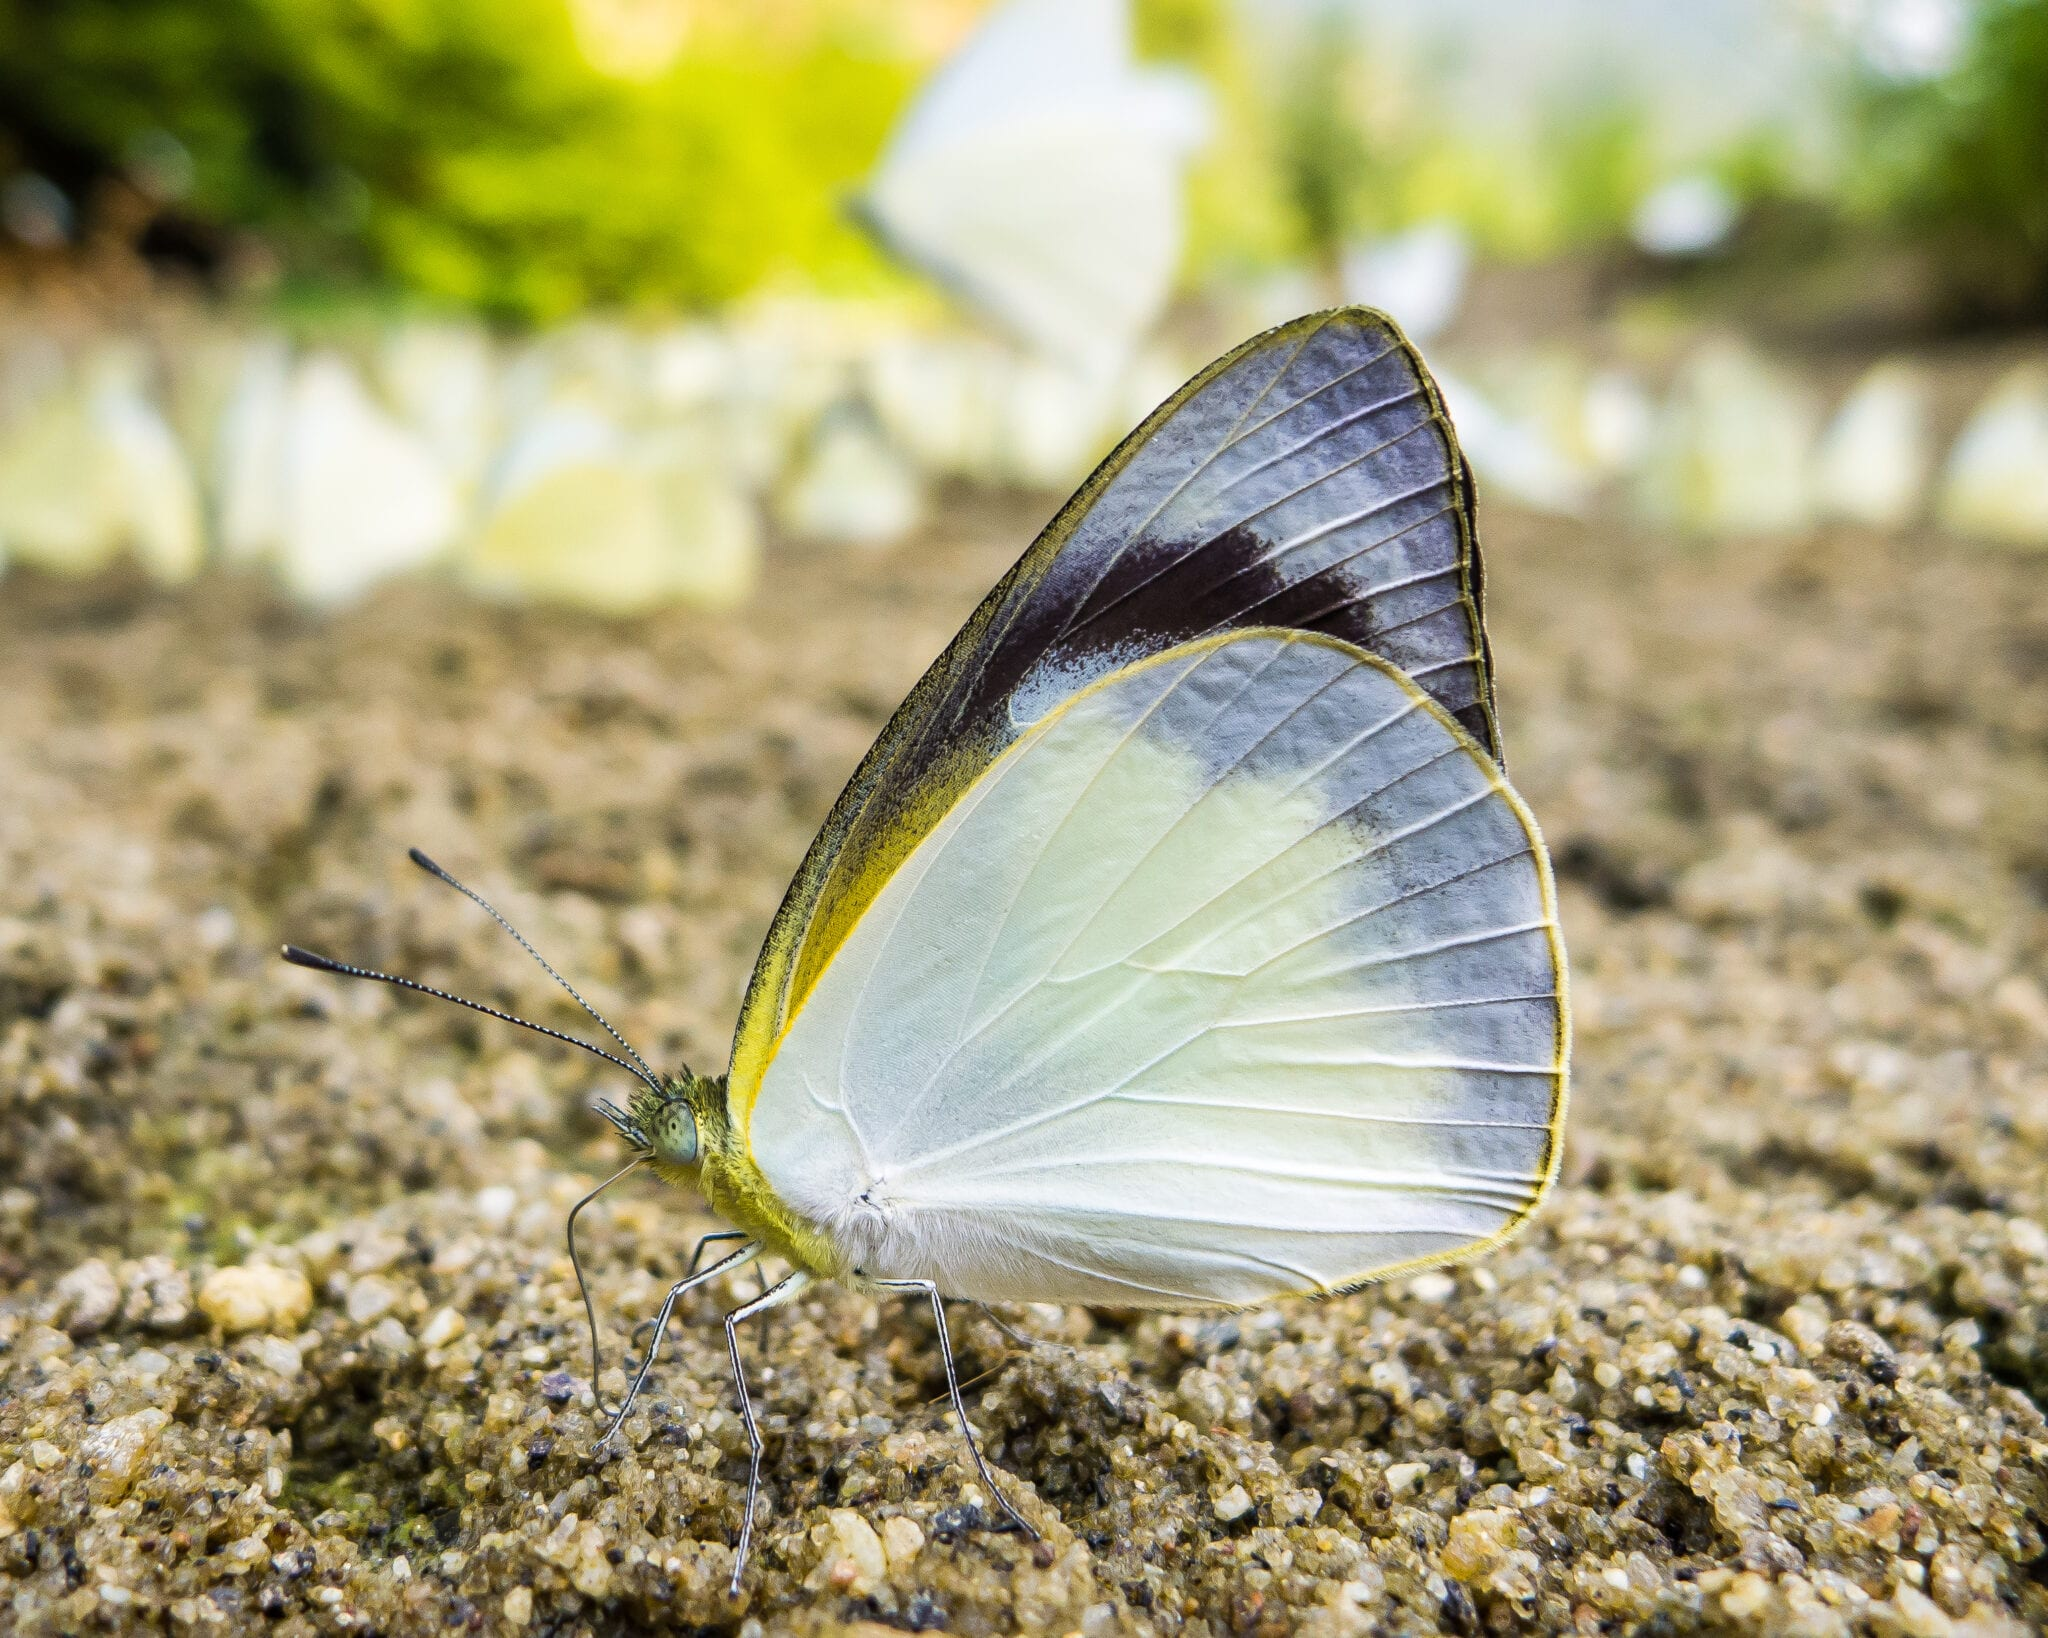 Image of a butterfly in Ba Bê National Park in Vietnam